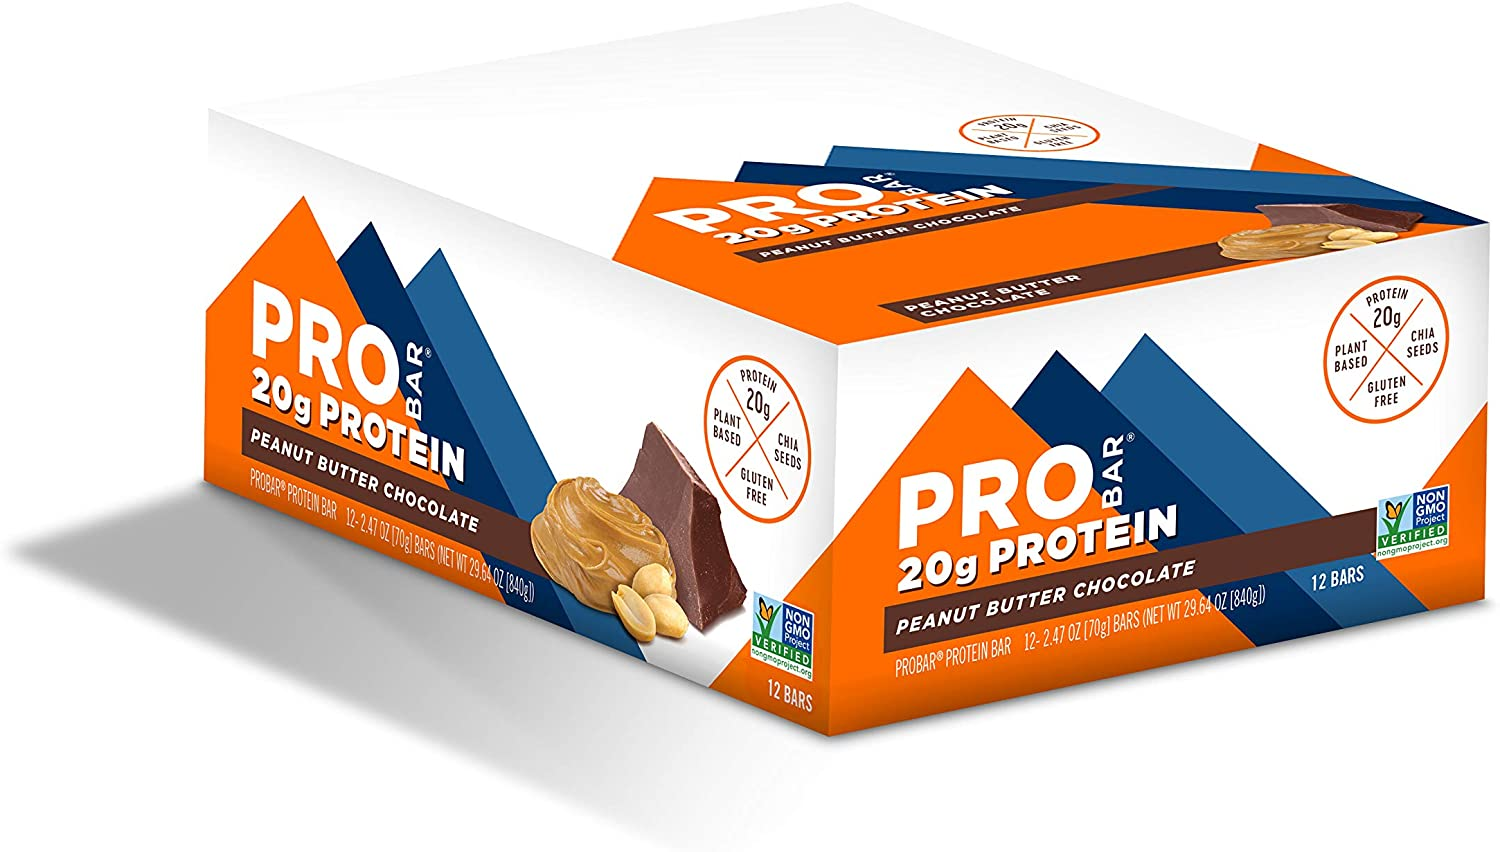 PROBAR - Base Protein Bar, Peanut Butter Chocolate, Non-GMO, Gluten-Free, Certified Organic, Healthy, Plant-Based Whole Food Ingredients (12 Count)